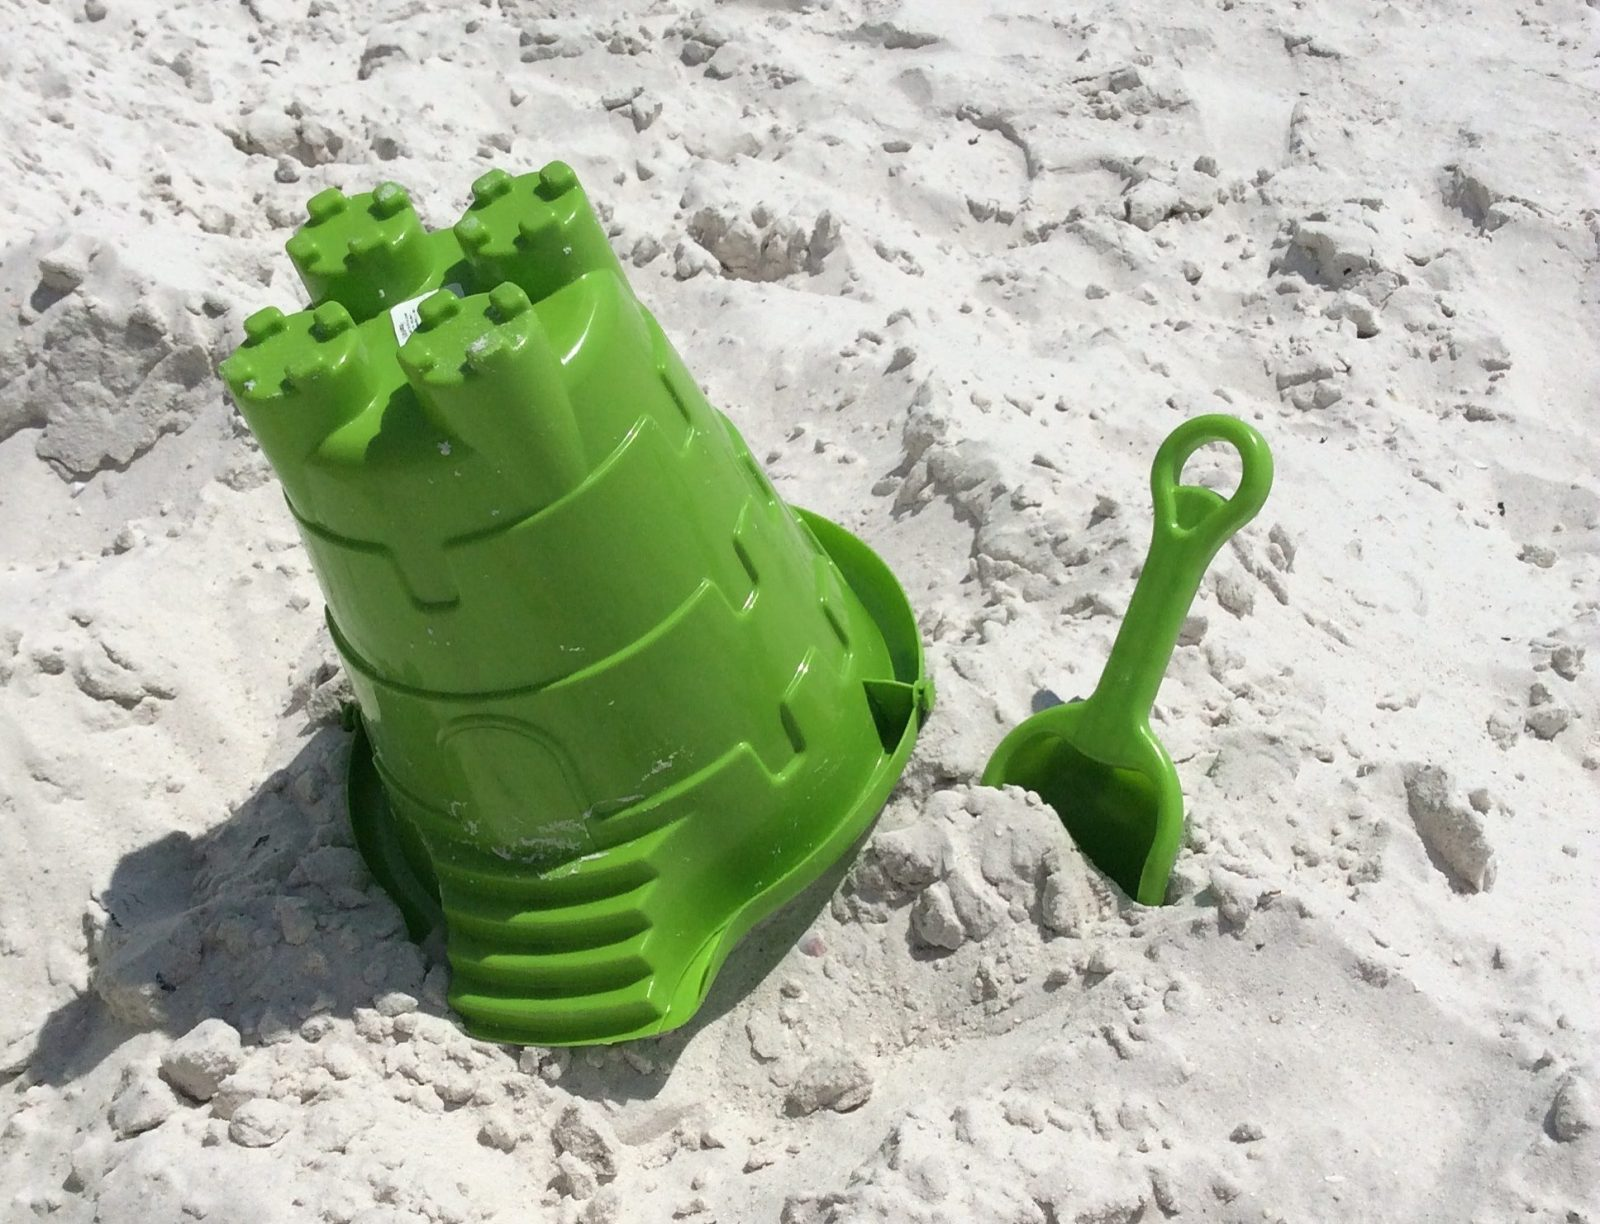 Staycation in your own country on the beach with a bucket and spade